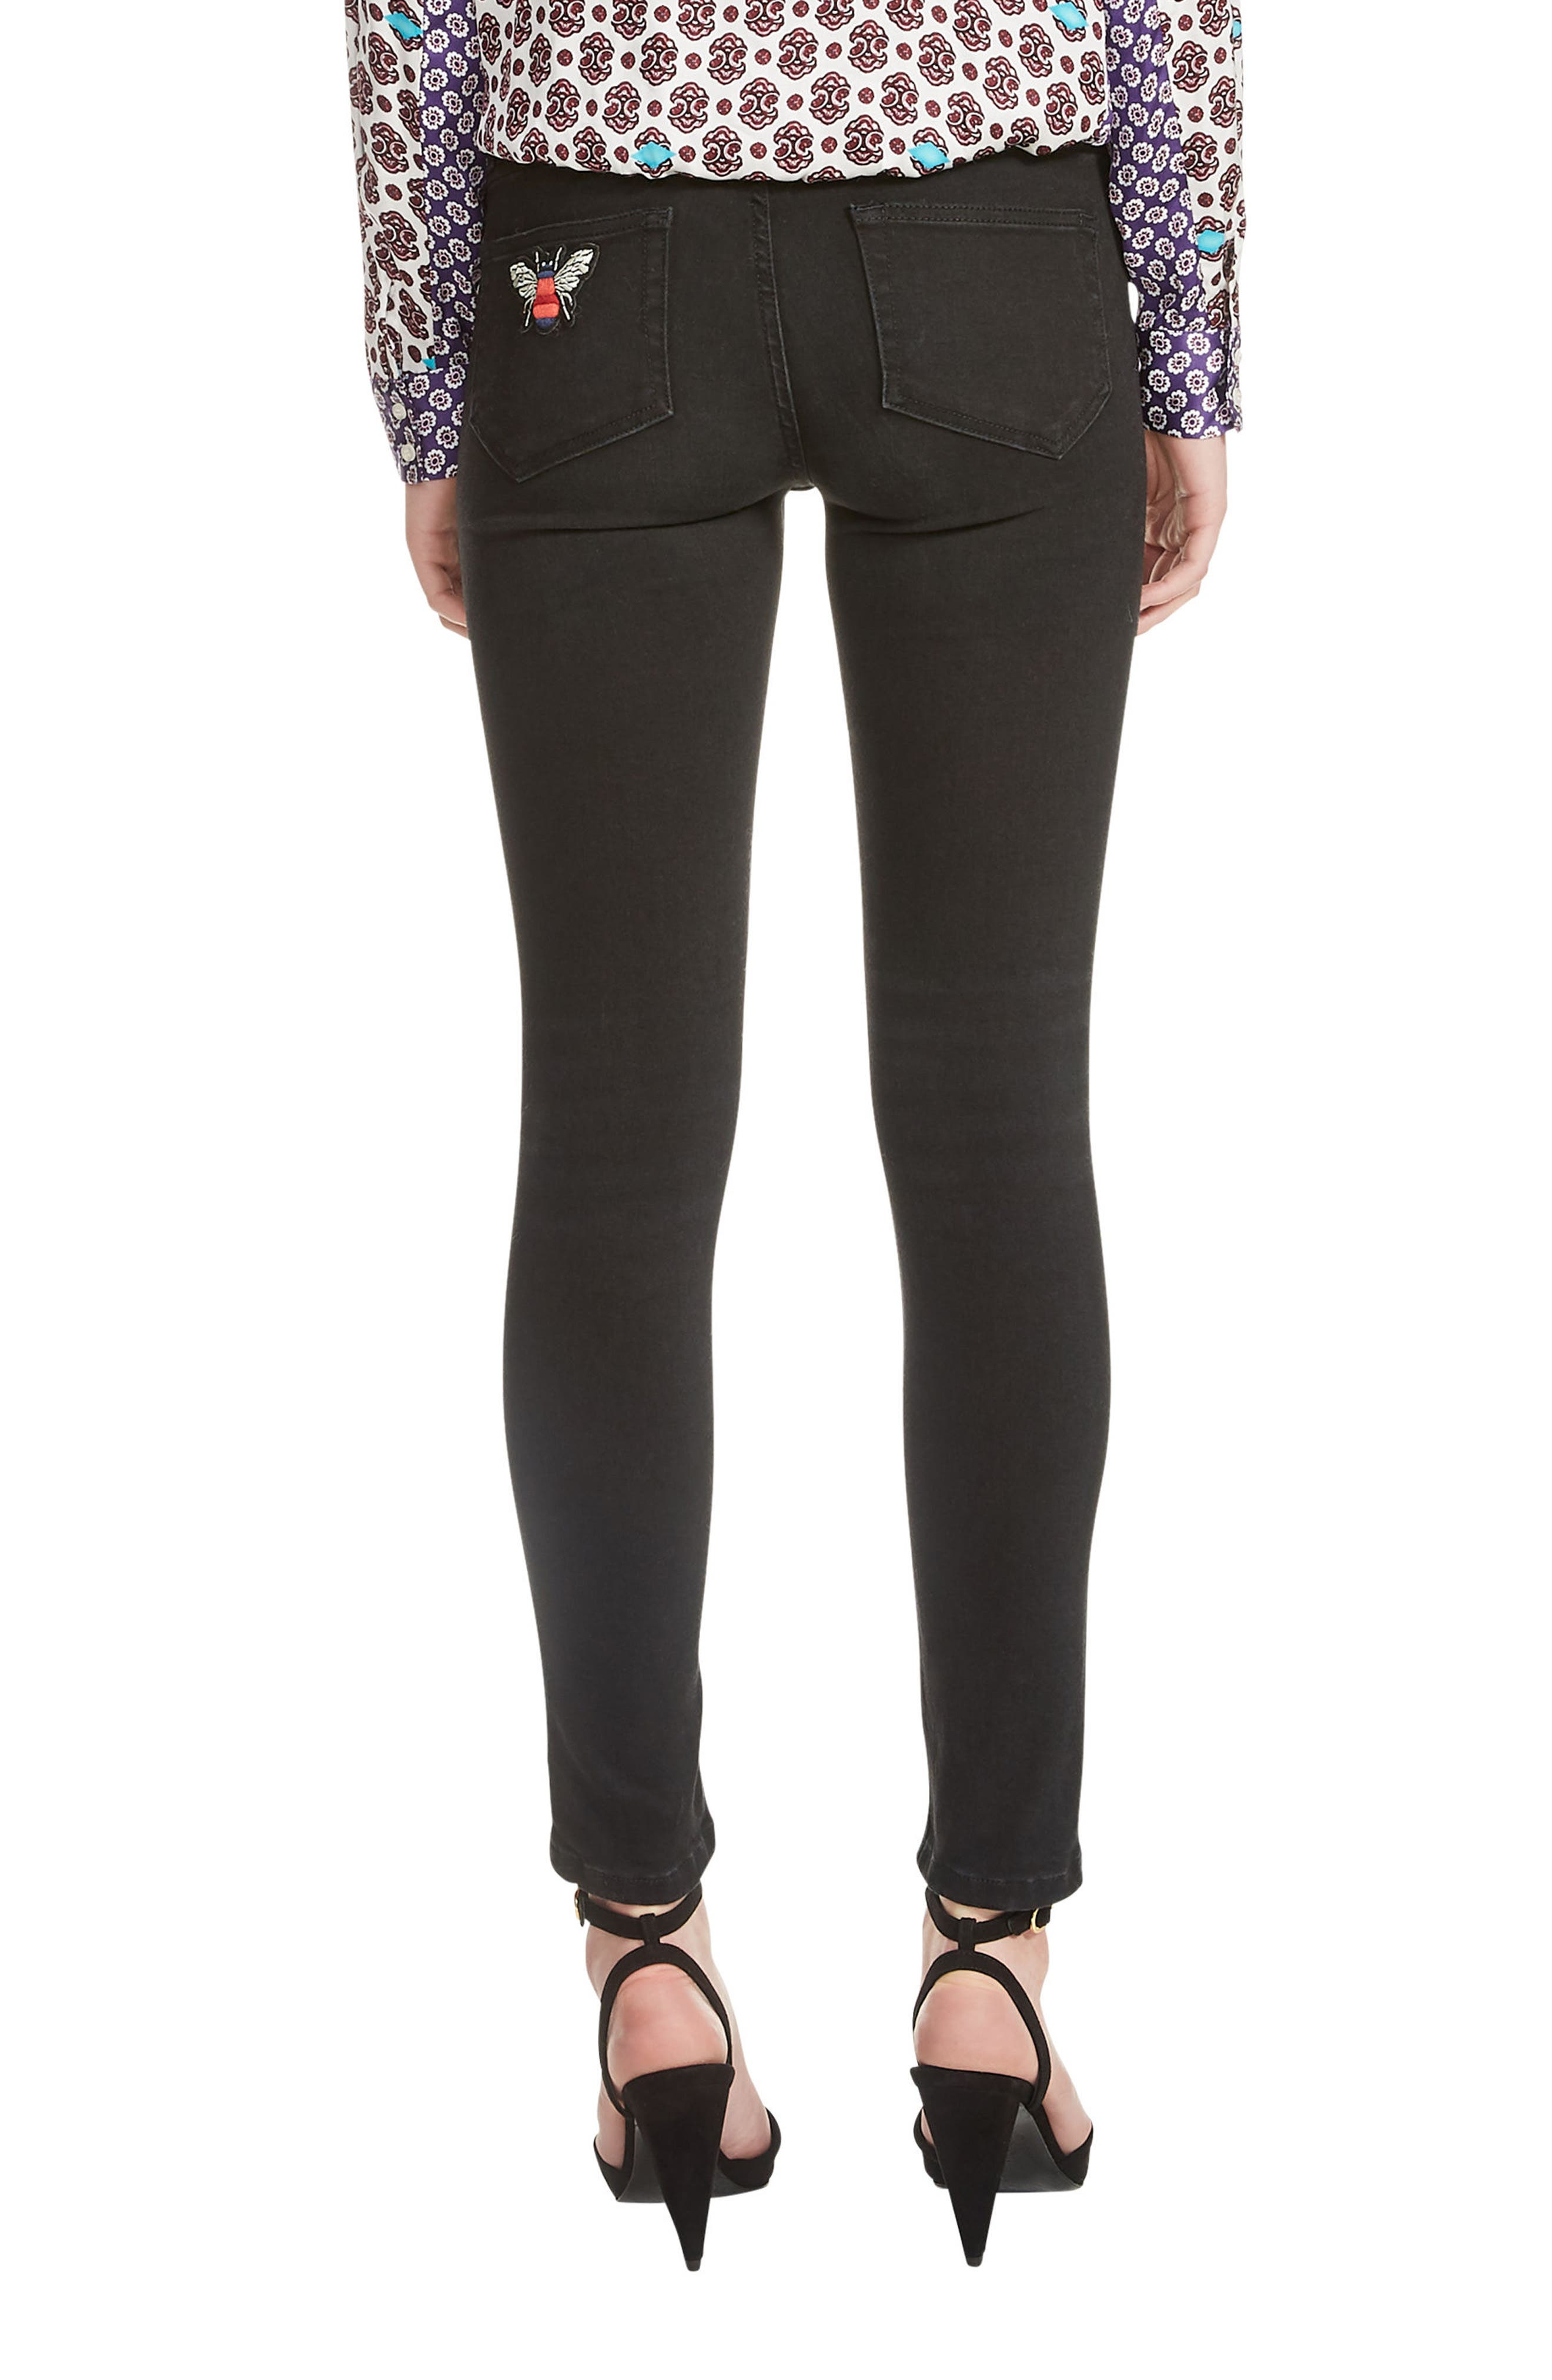 Priska Ripped Bee Embroidery Black Skinny Jeans,                             Alternate thumbnail 2, color,                             001